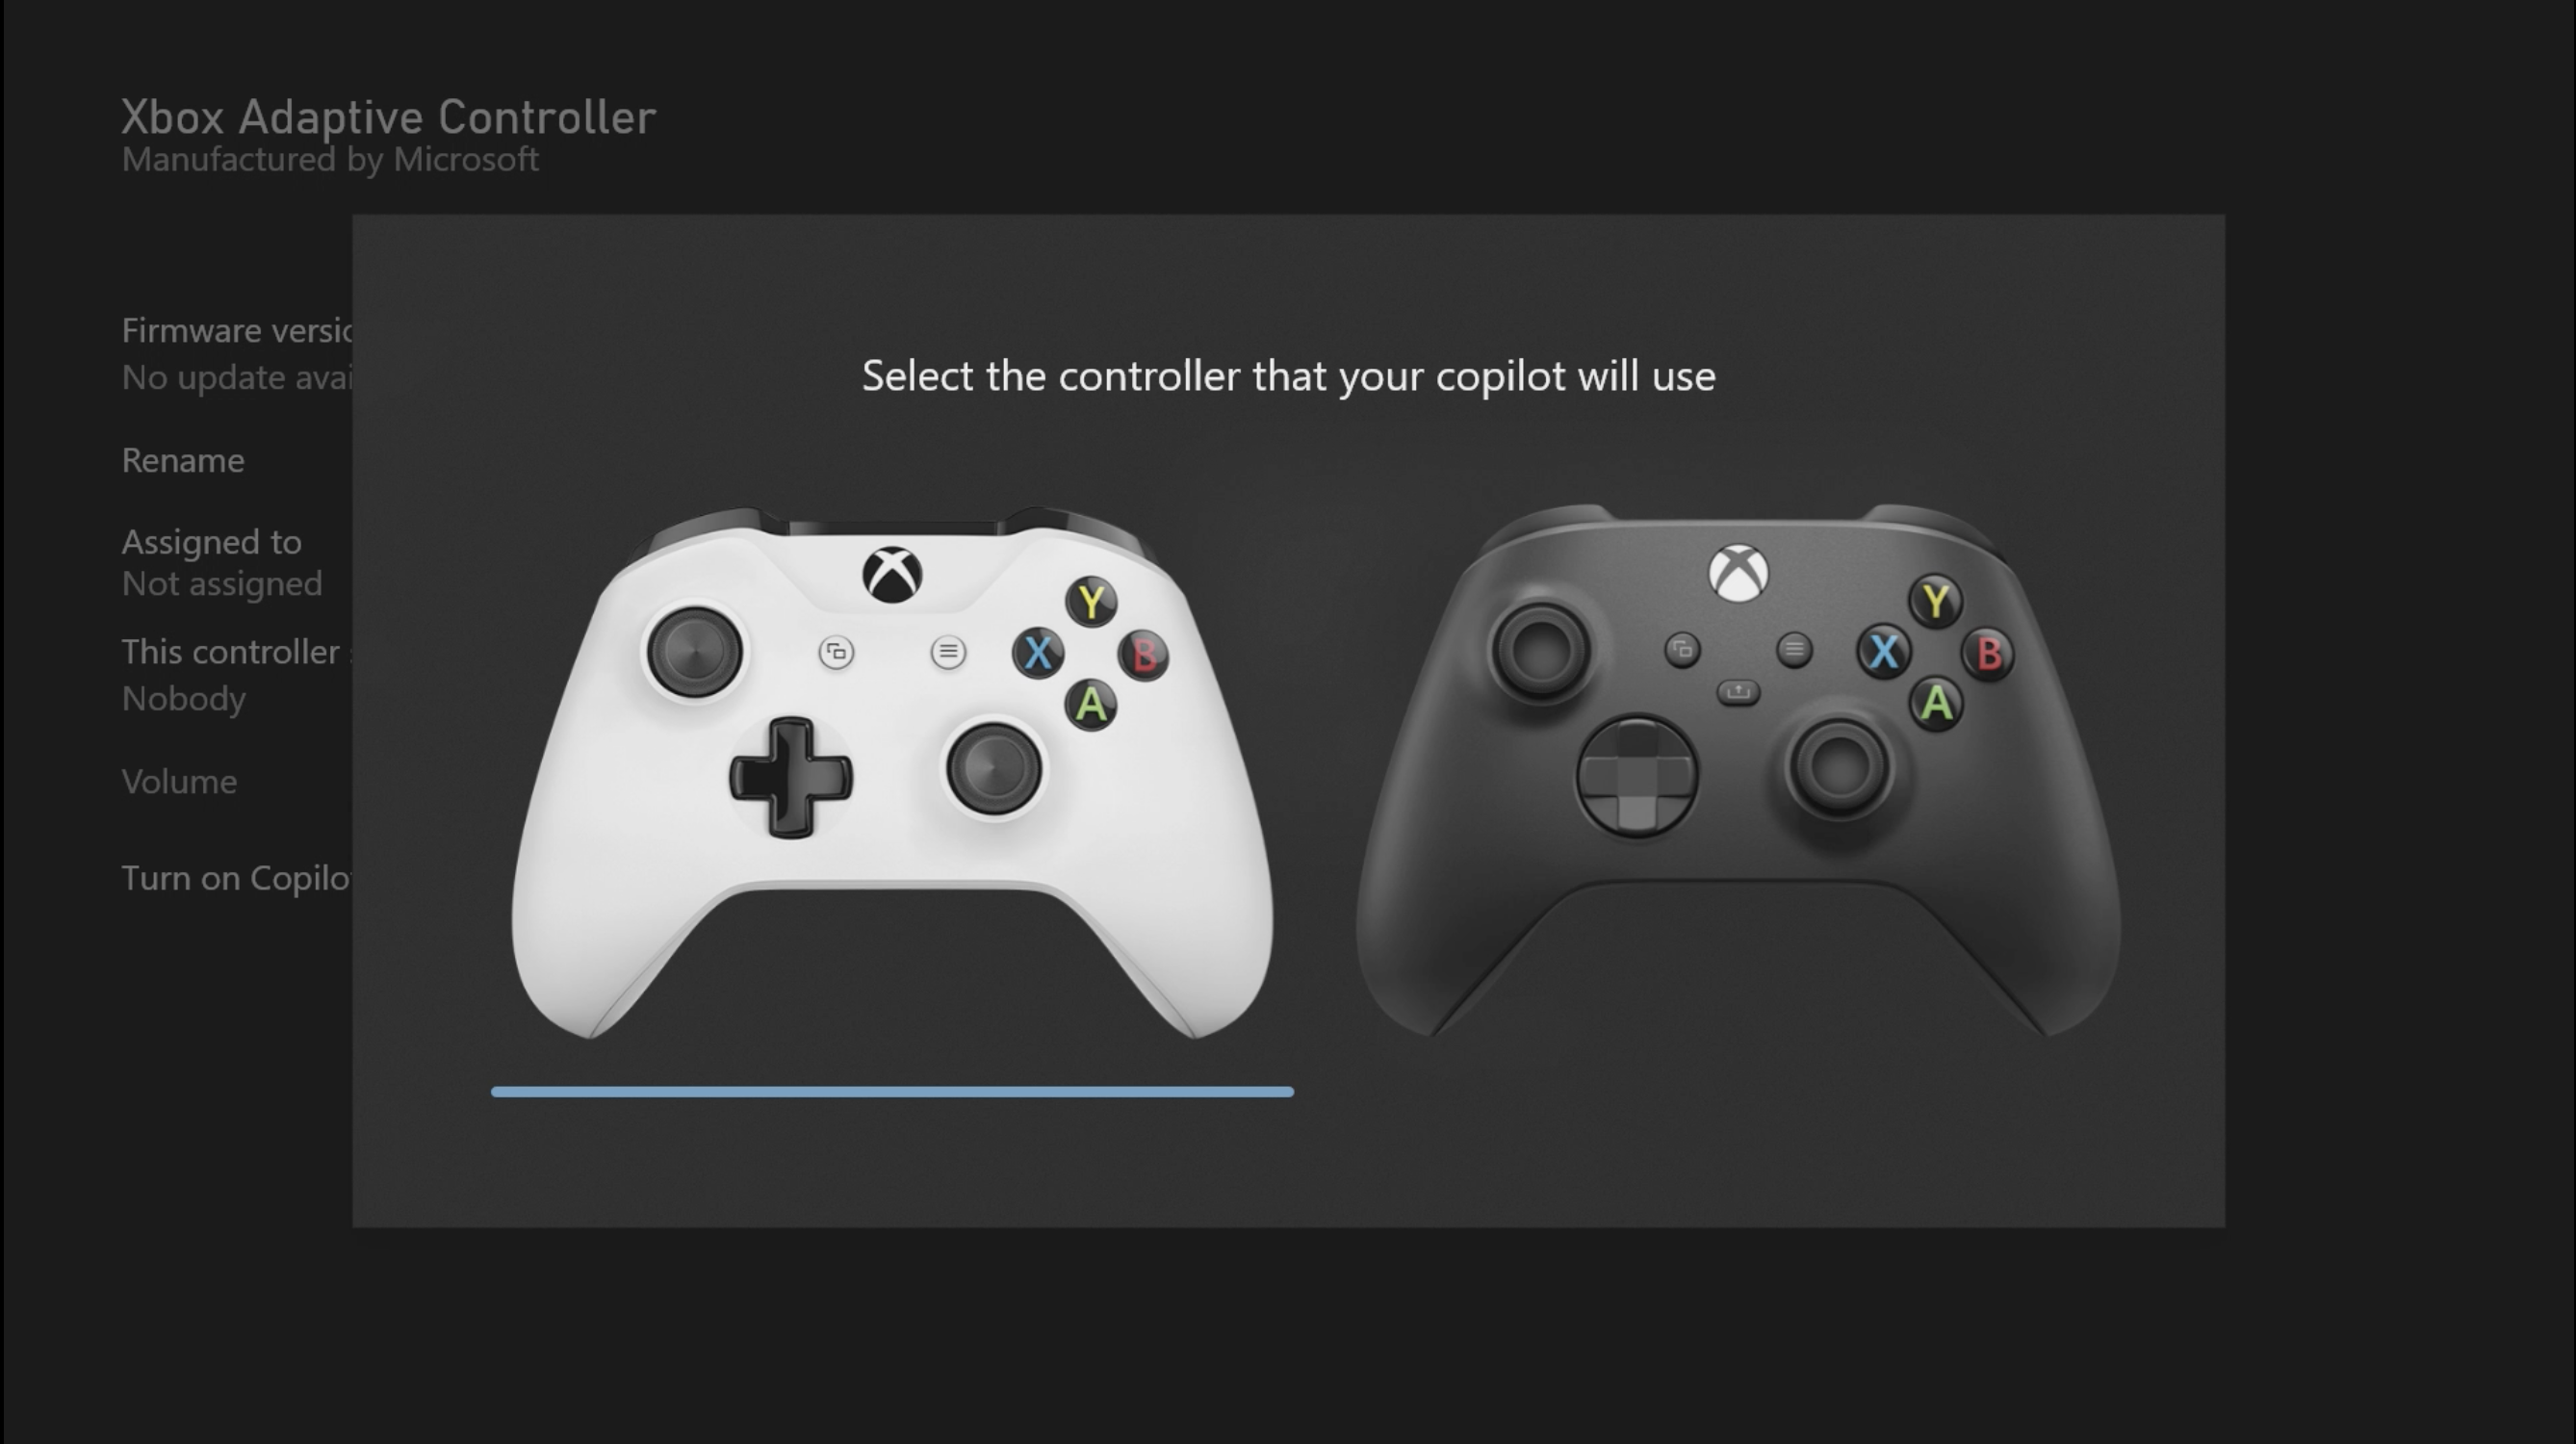 Screenshot showing two standard controllers side by side with a message stating ' Select the controller that your copilot will use.'